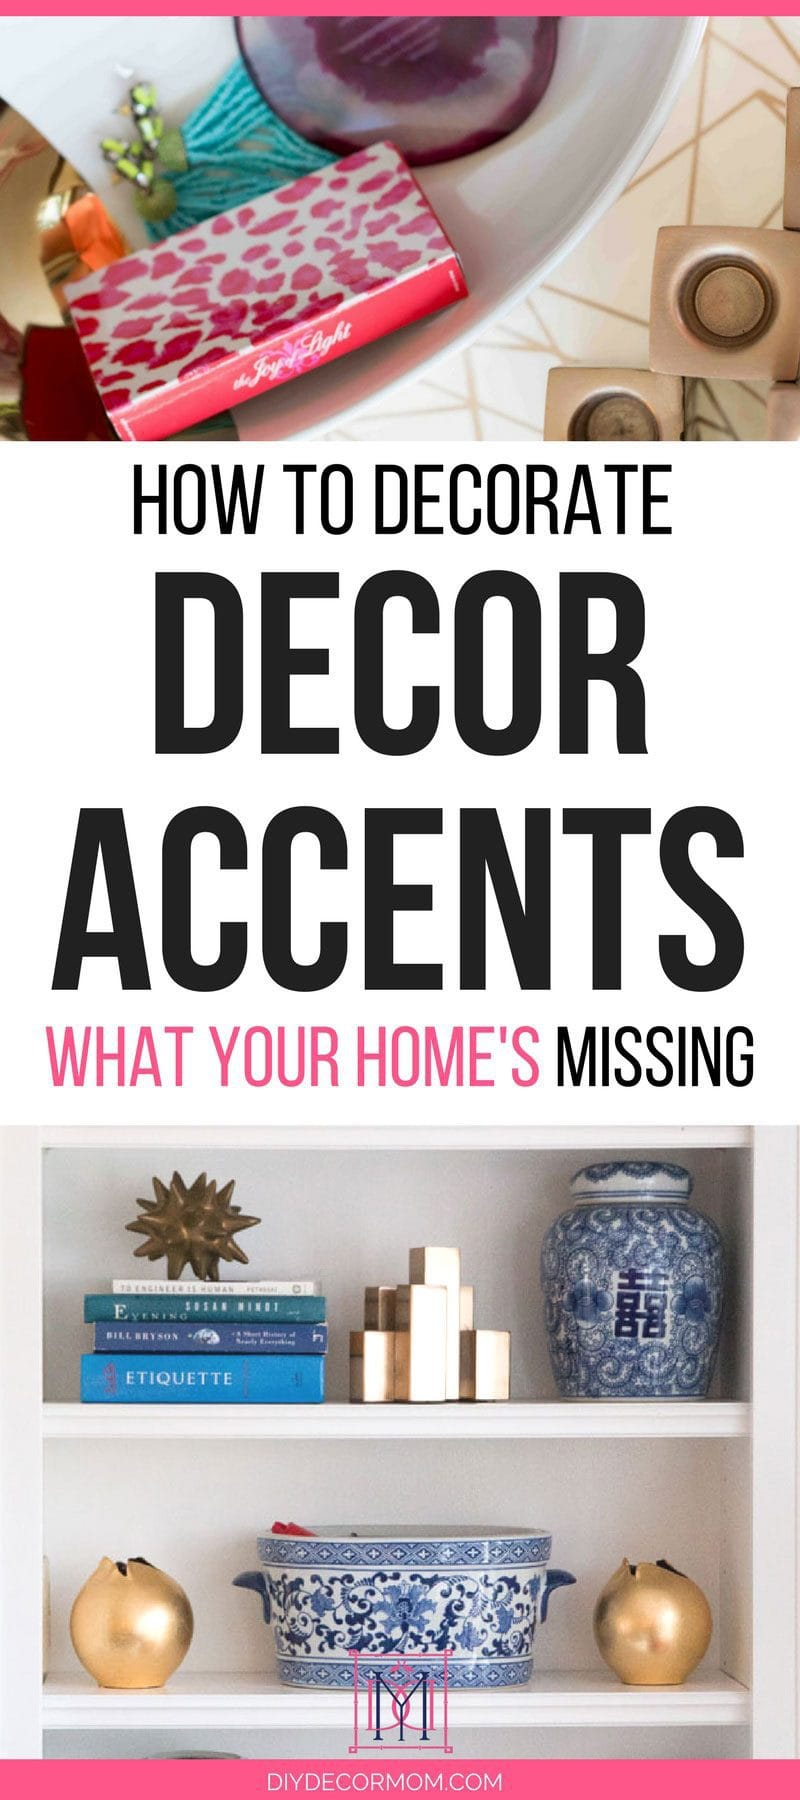 decor accents and decorative objects for styling home